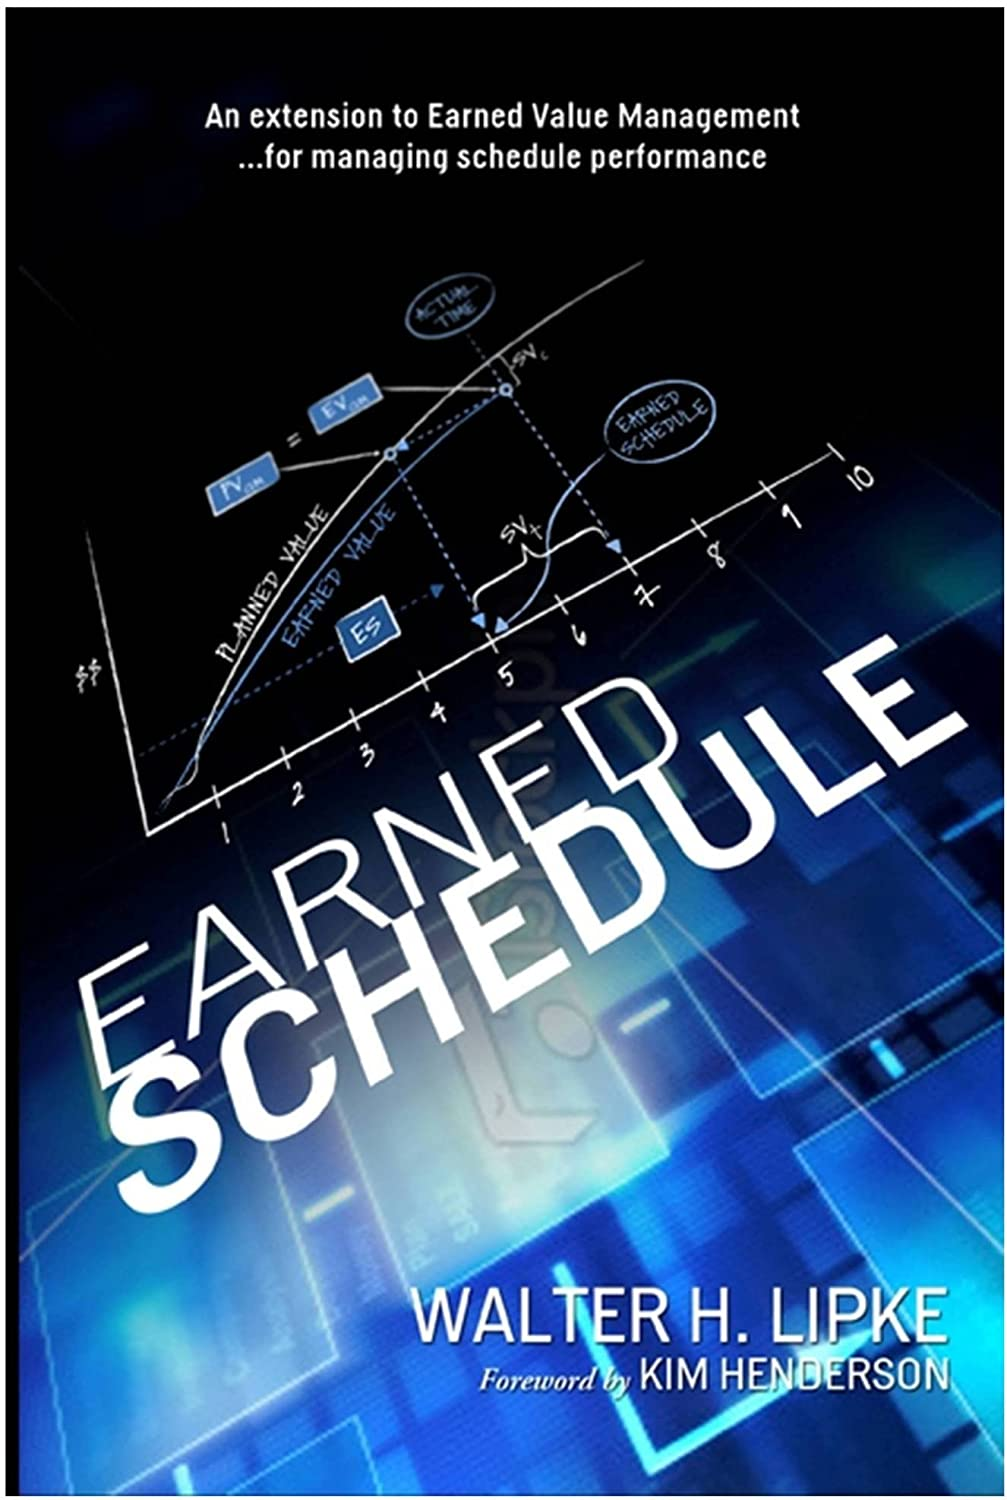 Earned Schedule